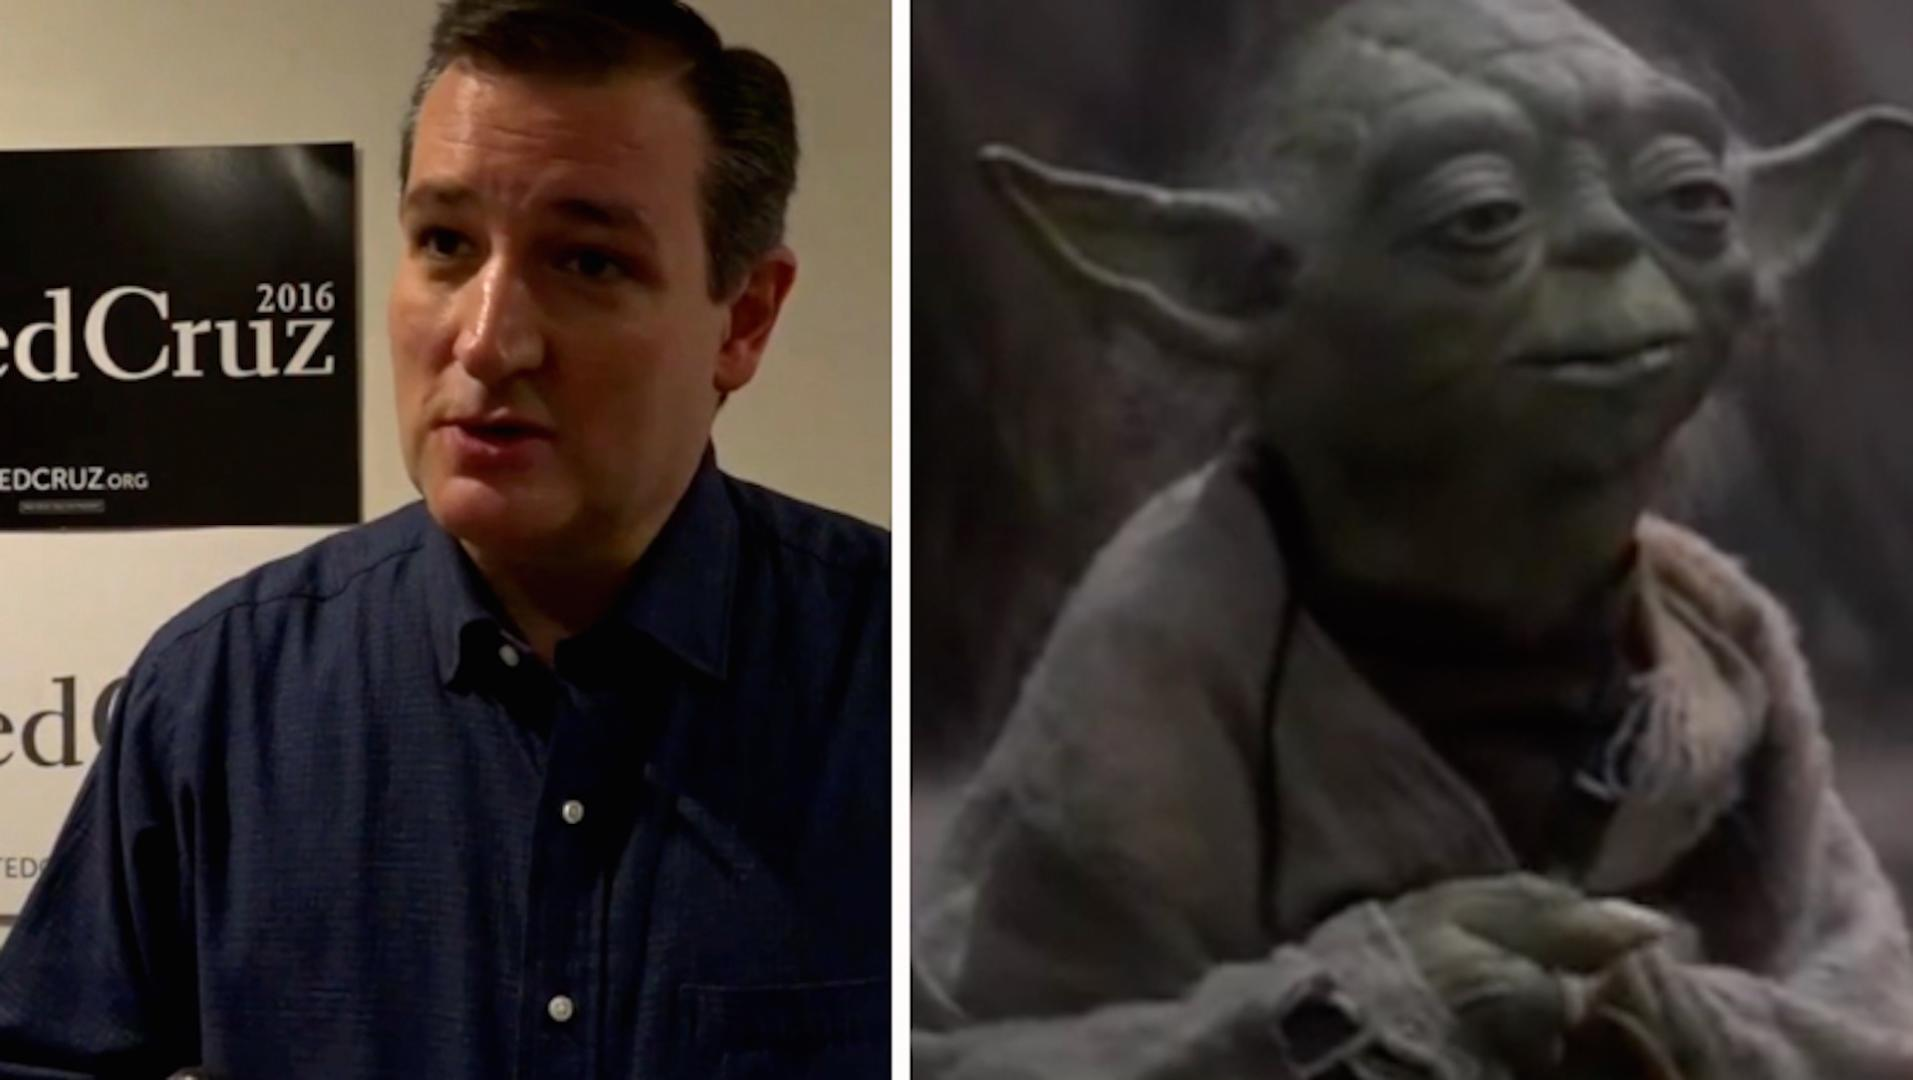 Ted Cruz's weirdest pop culture references, from 'Star Wars' to 'The Simpsons'